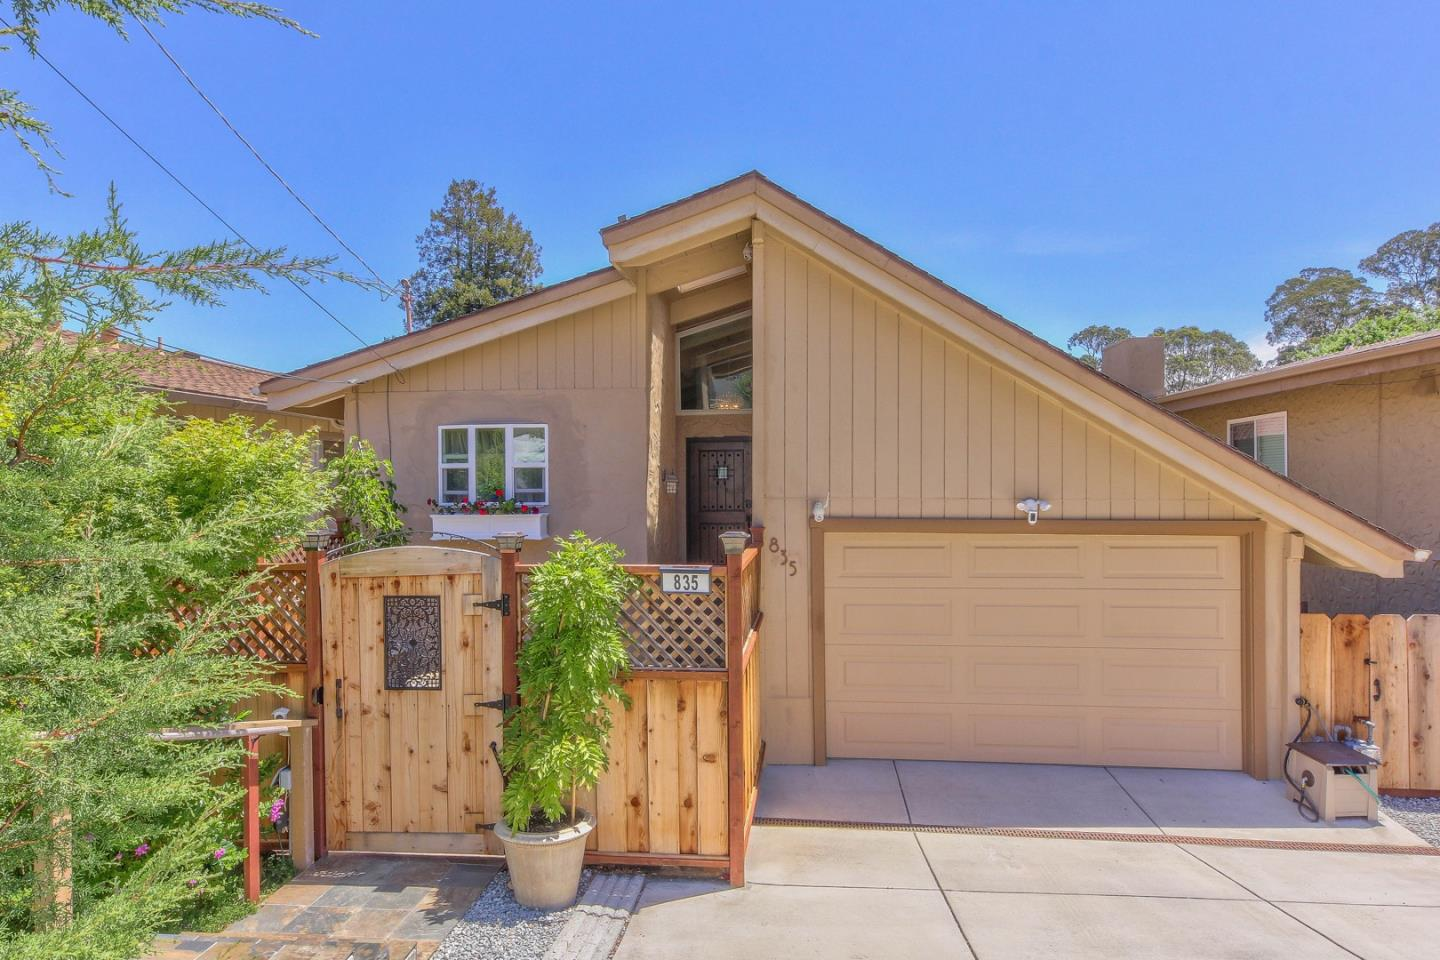 Photo of 835 Doud ST, MONTEREY, CA 93940